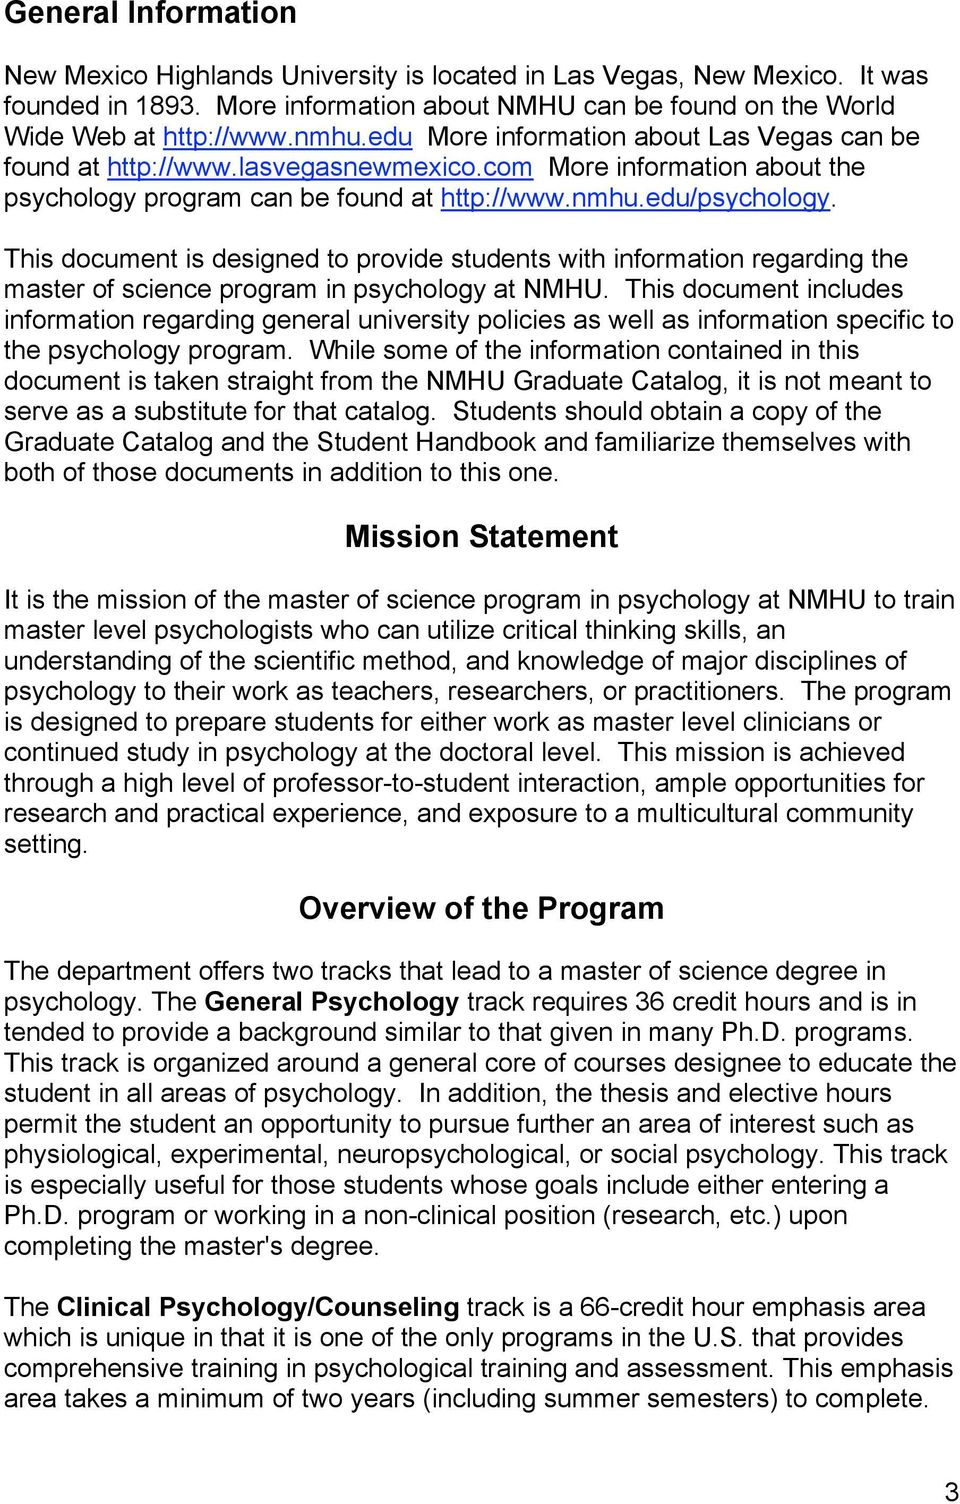 This document is designed to provide students with information regarding the master of science program in psychology at NMHU.